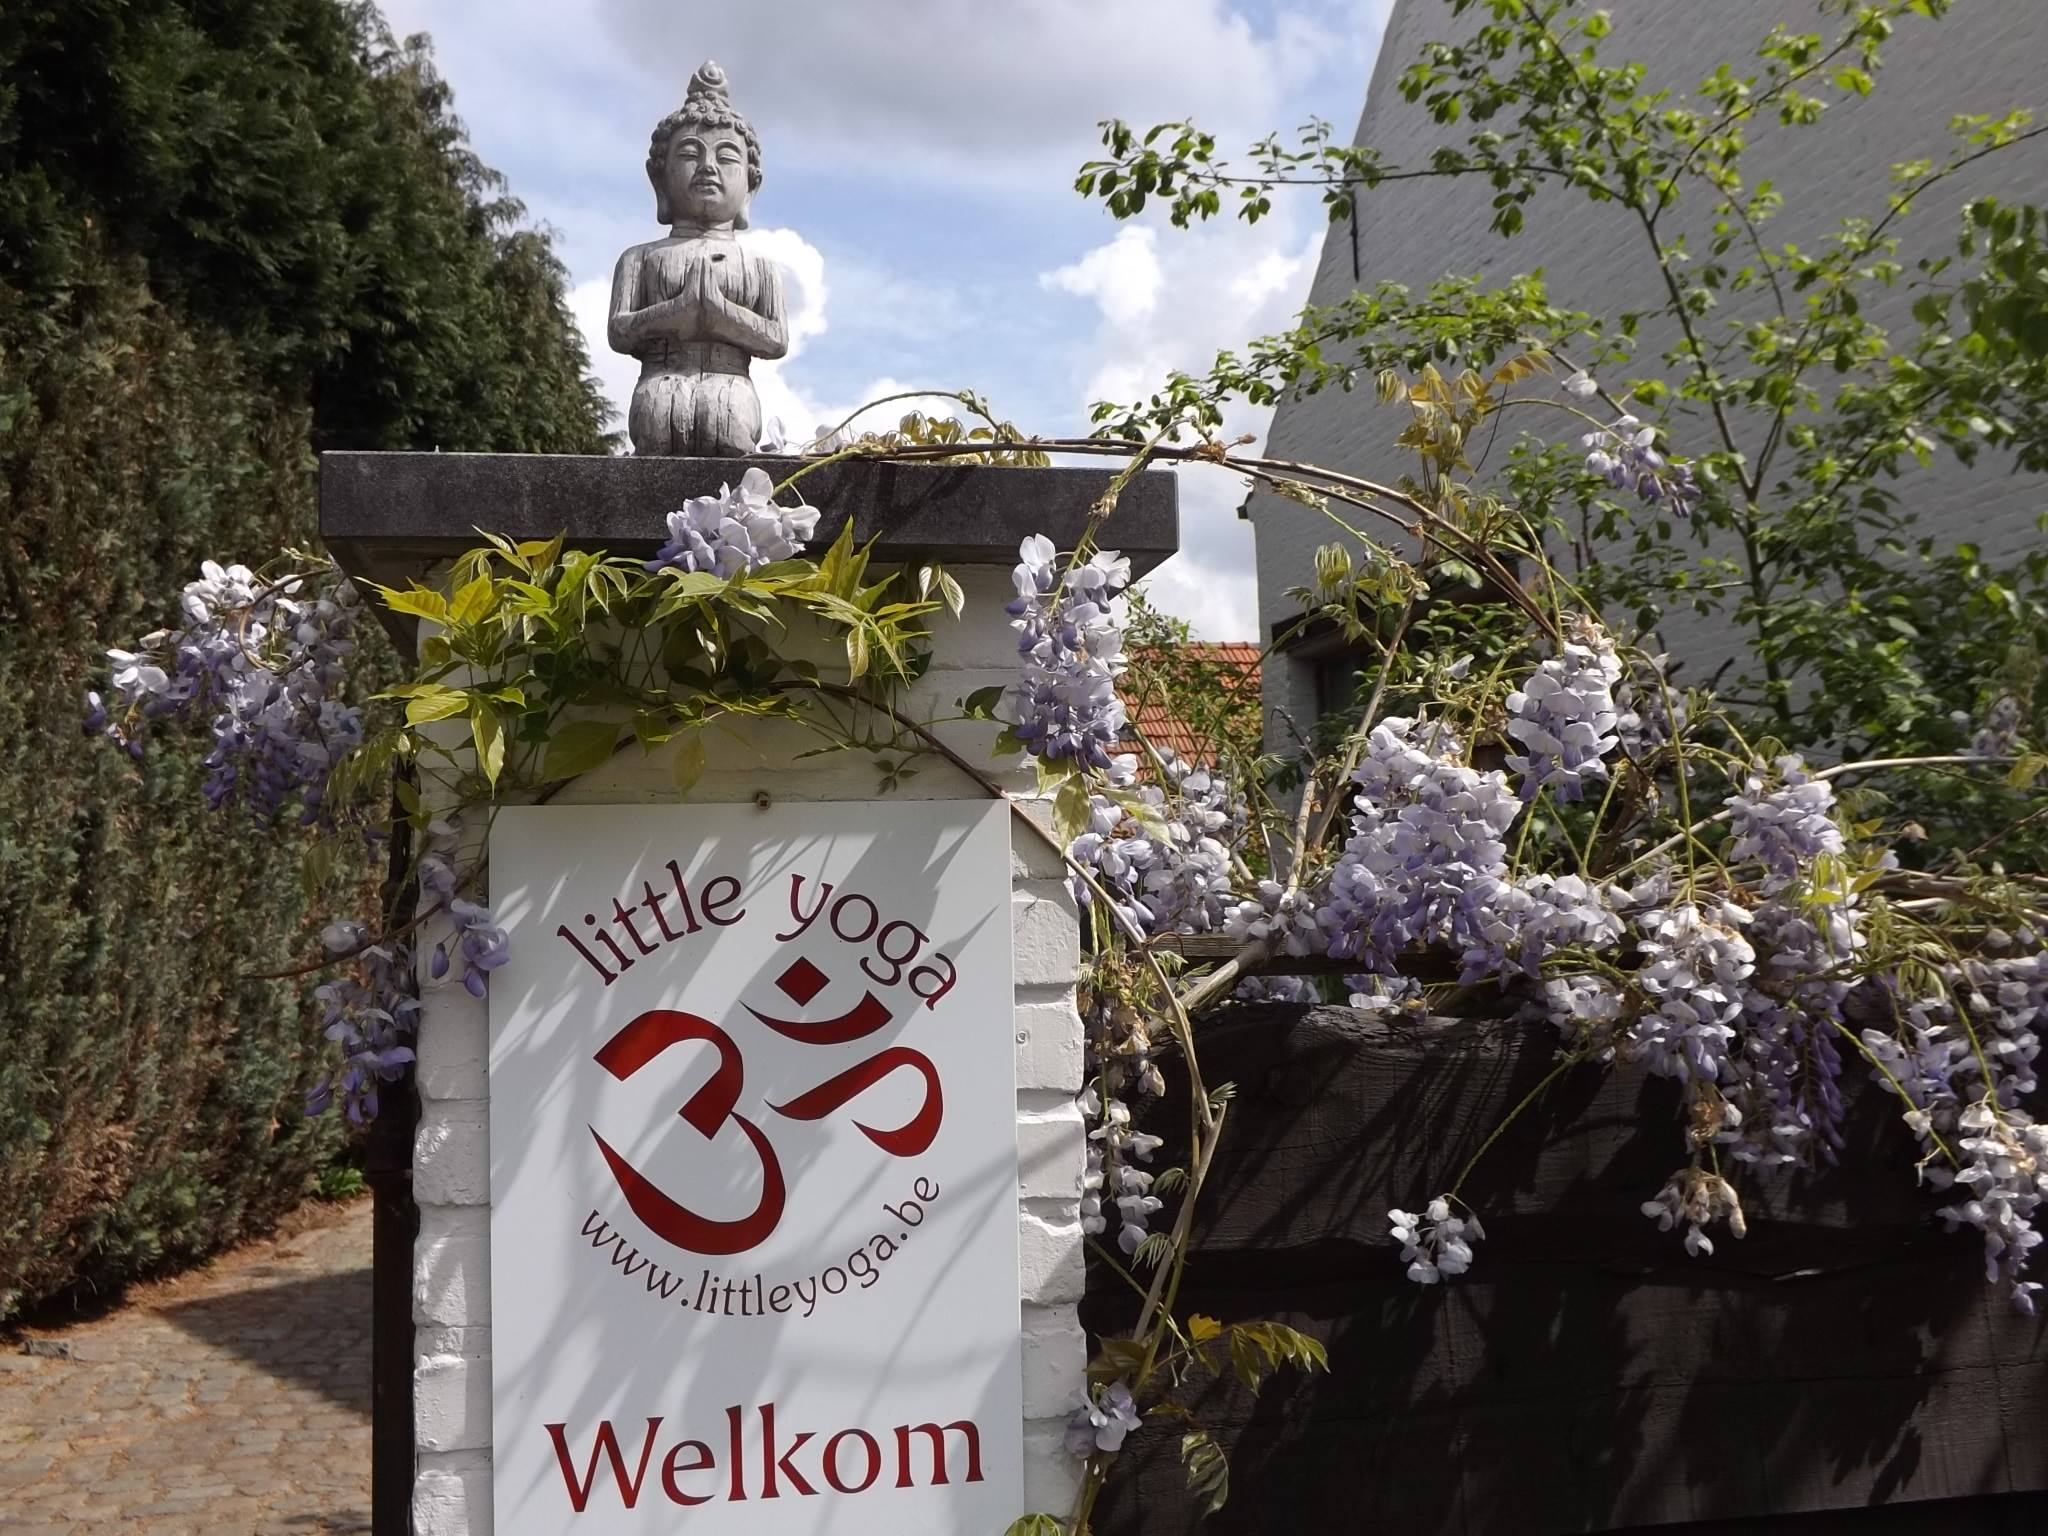 Contact - Little Yoga Oelegem